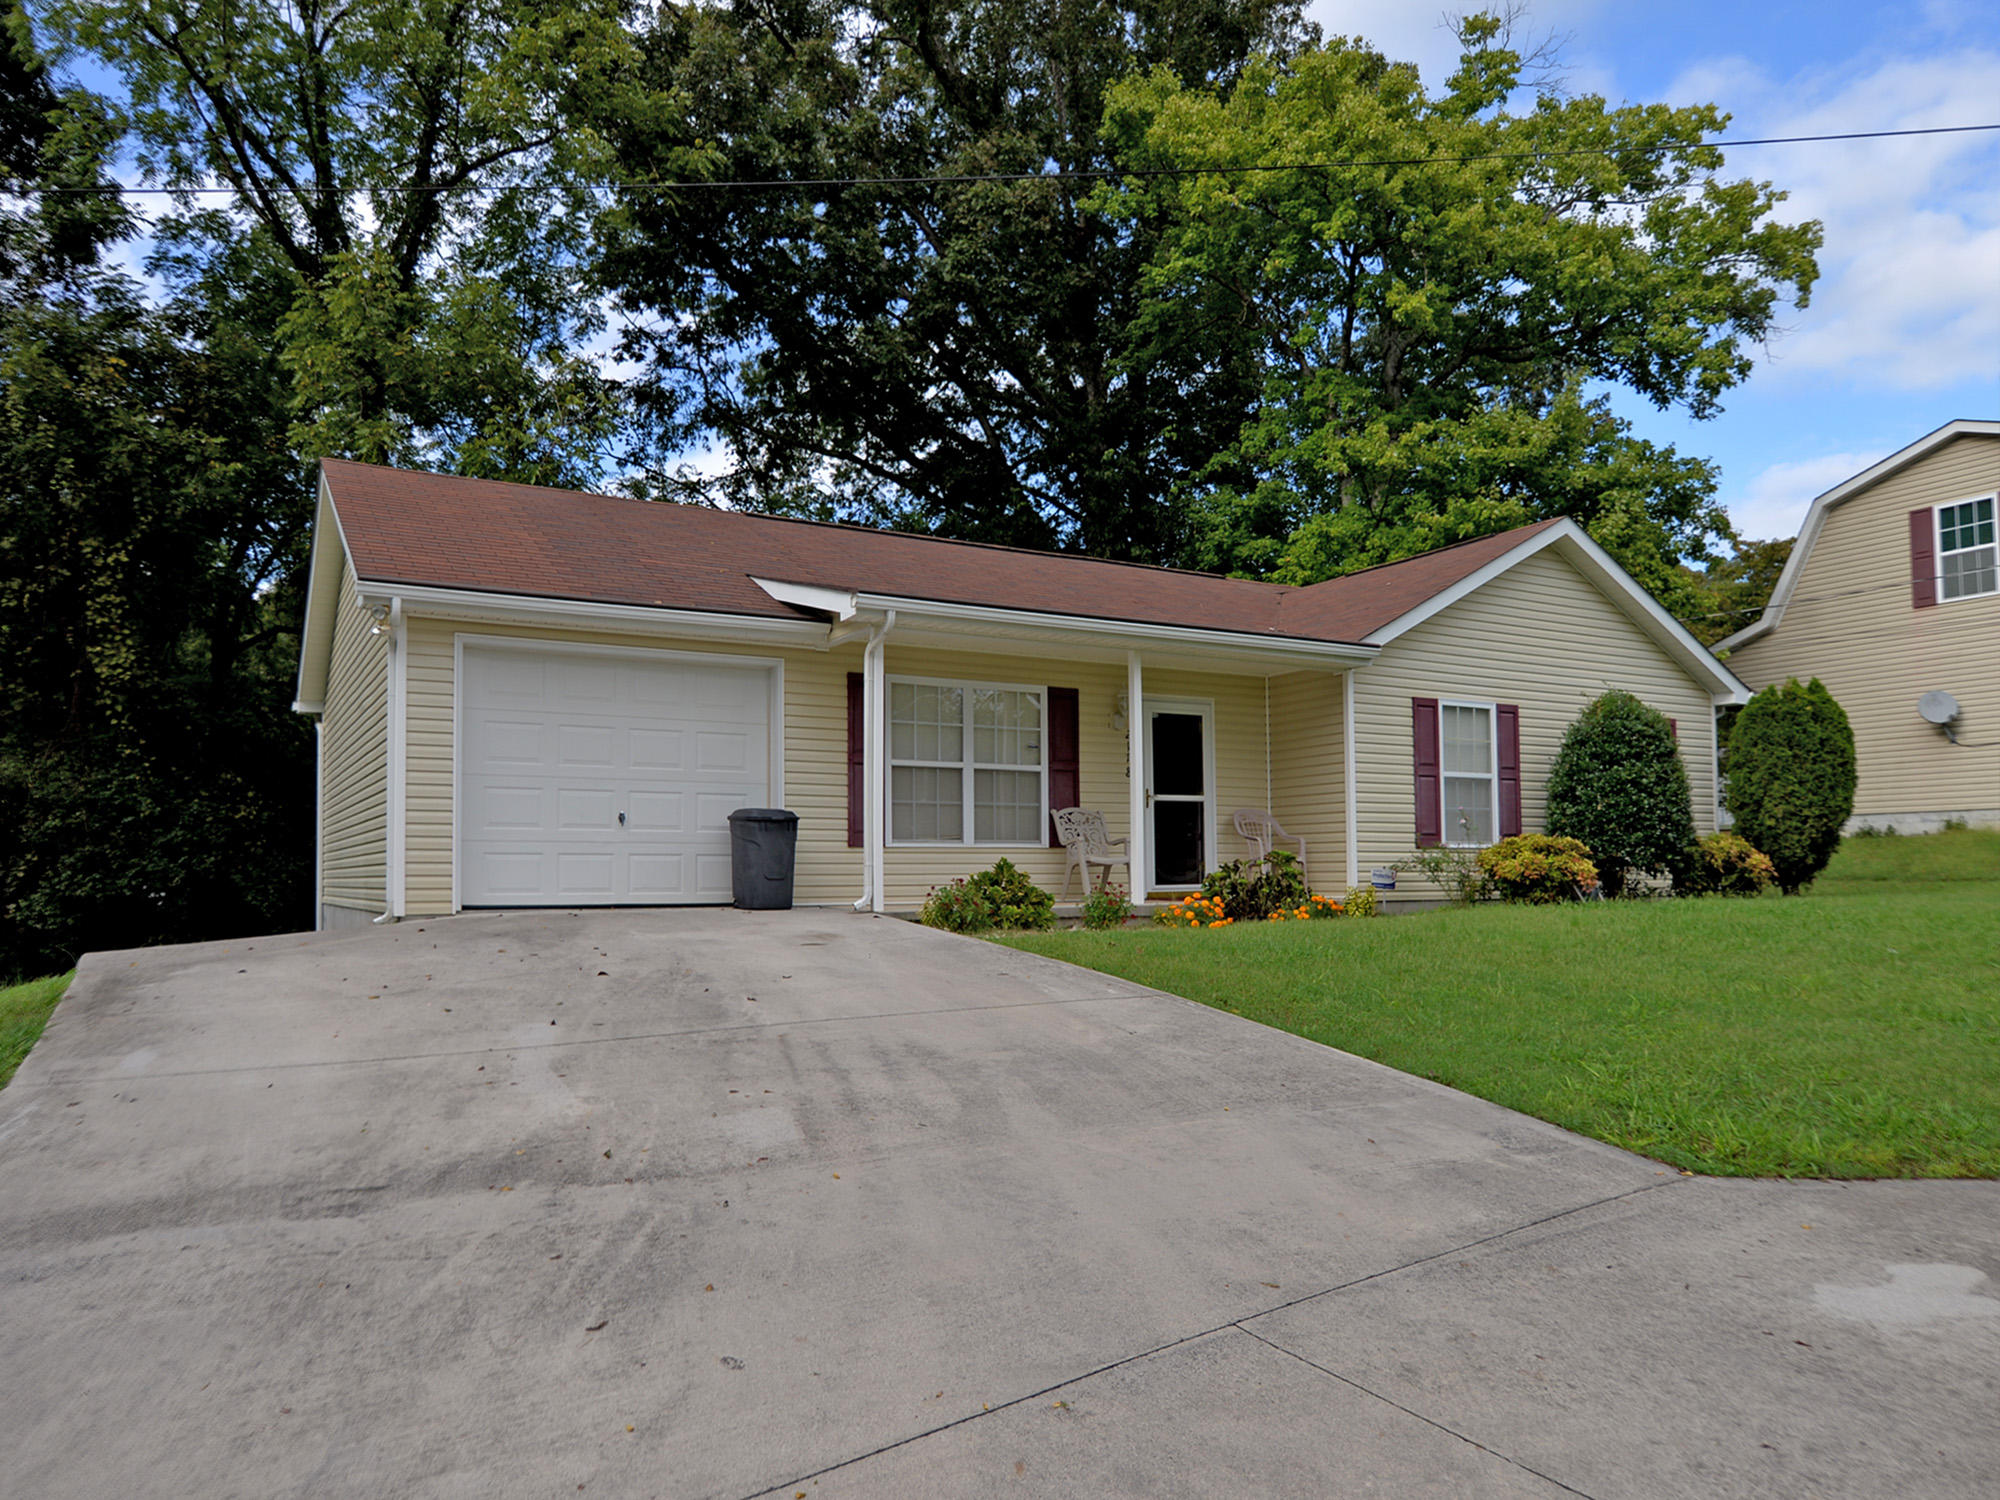 2118 Spring Hill Rd, Knoxville, Tennessee 37914, 3 Bedrooms Bedrooms, ,2 BathroomsBathrooms,Single Family,For Sale,Spring Hill,1057788